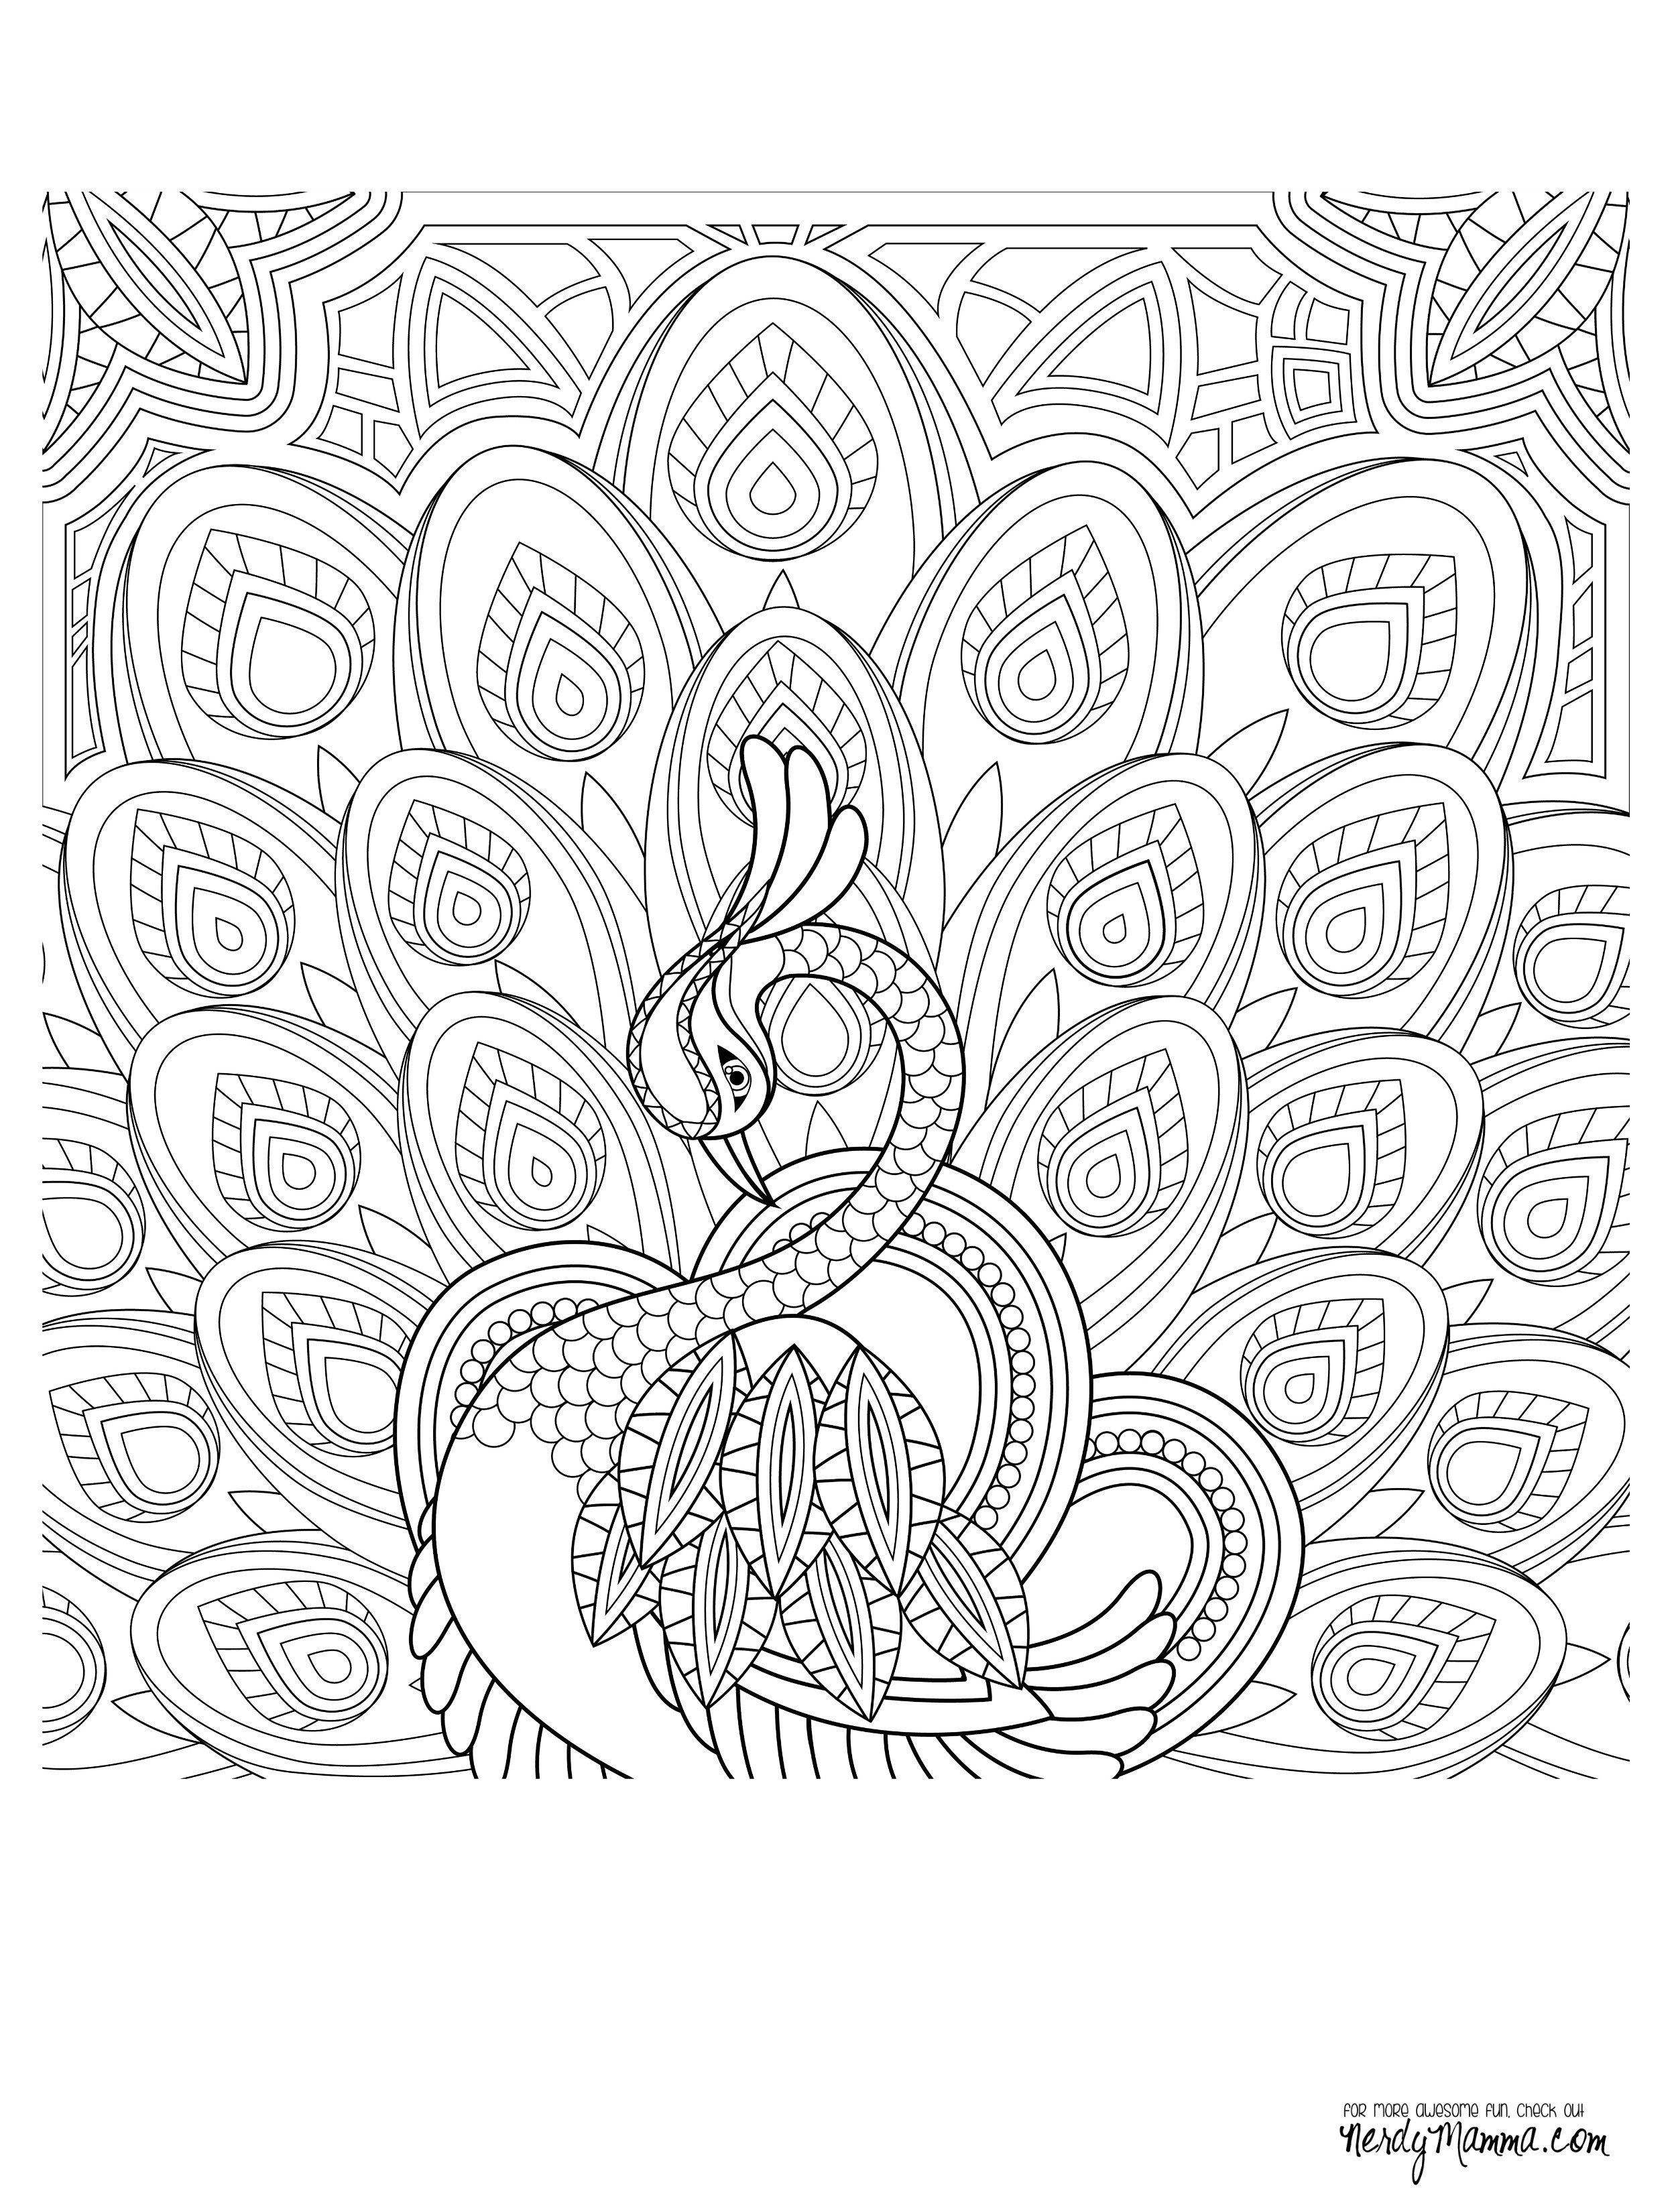 Gay Coloring Pages  Collection 15c - Save it to your computer